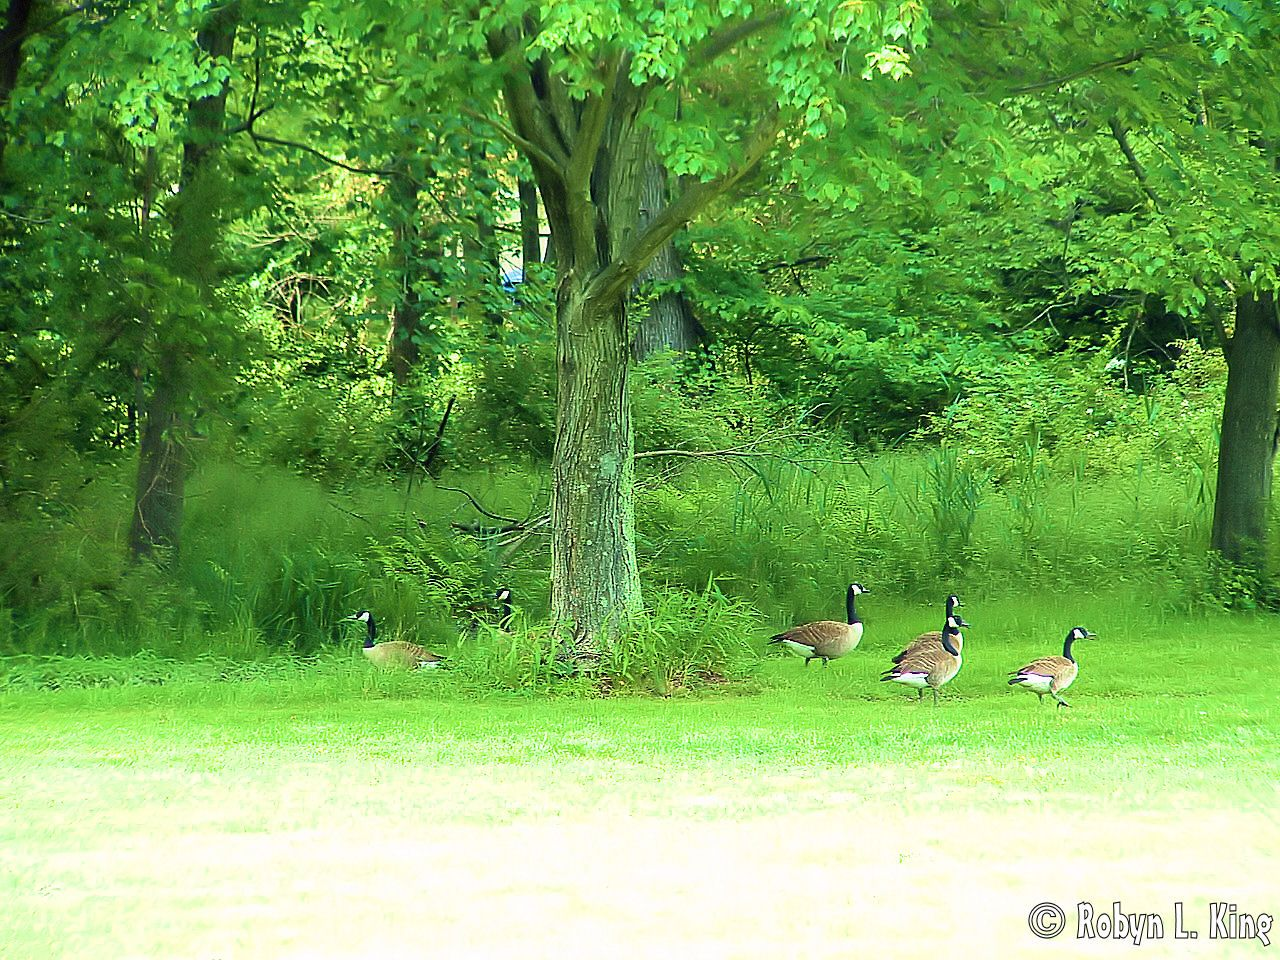 Geese by Robyn King